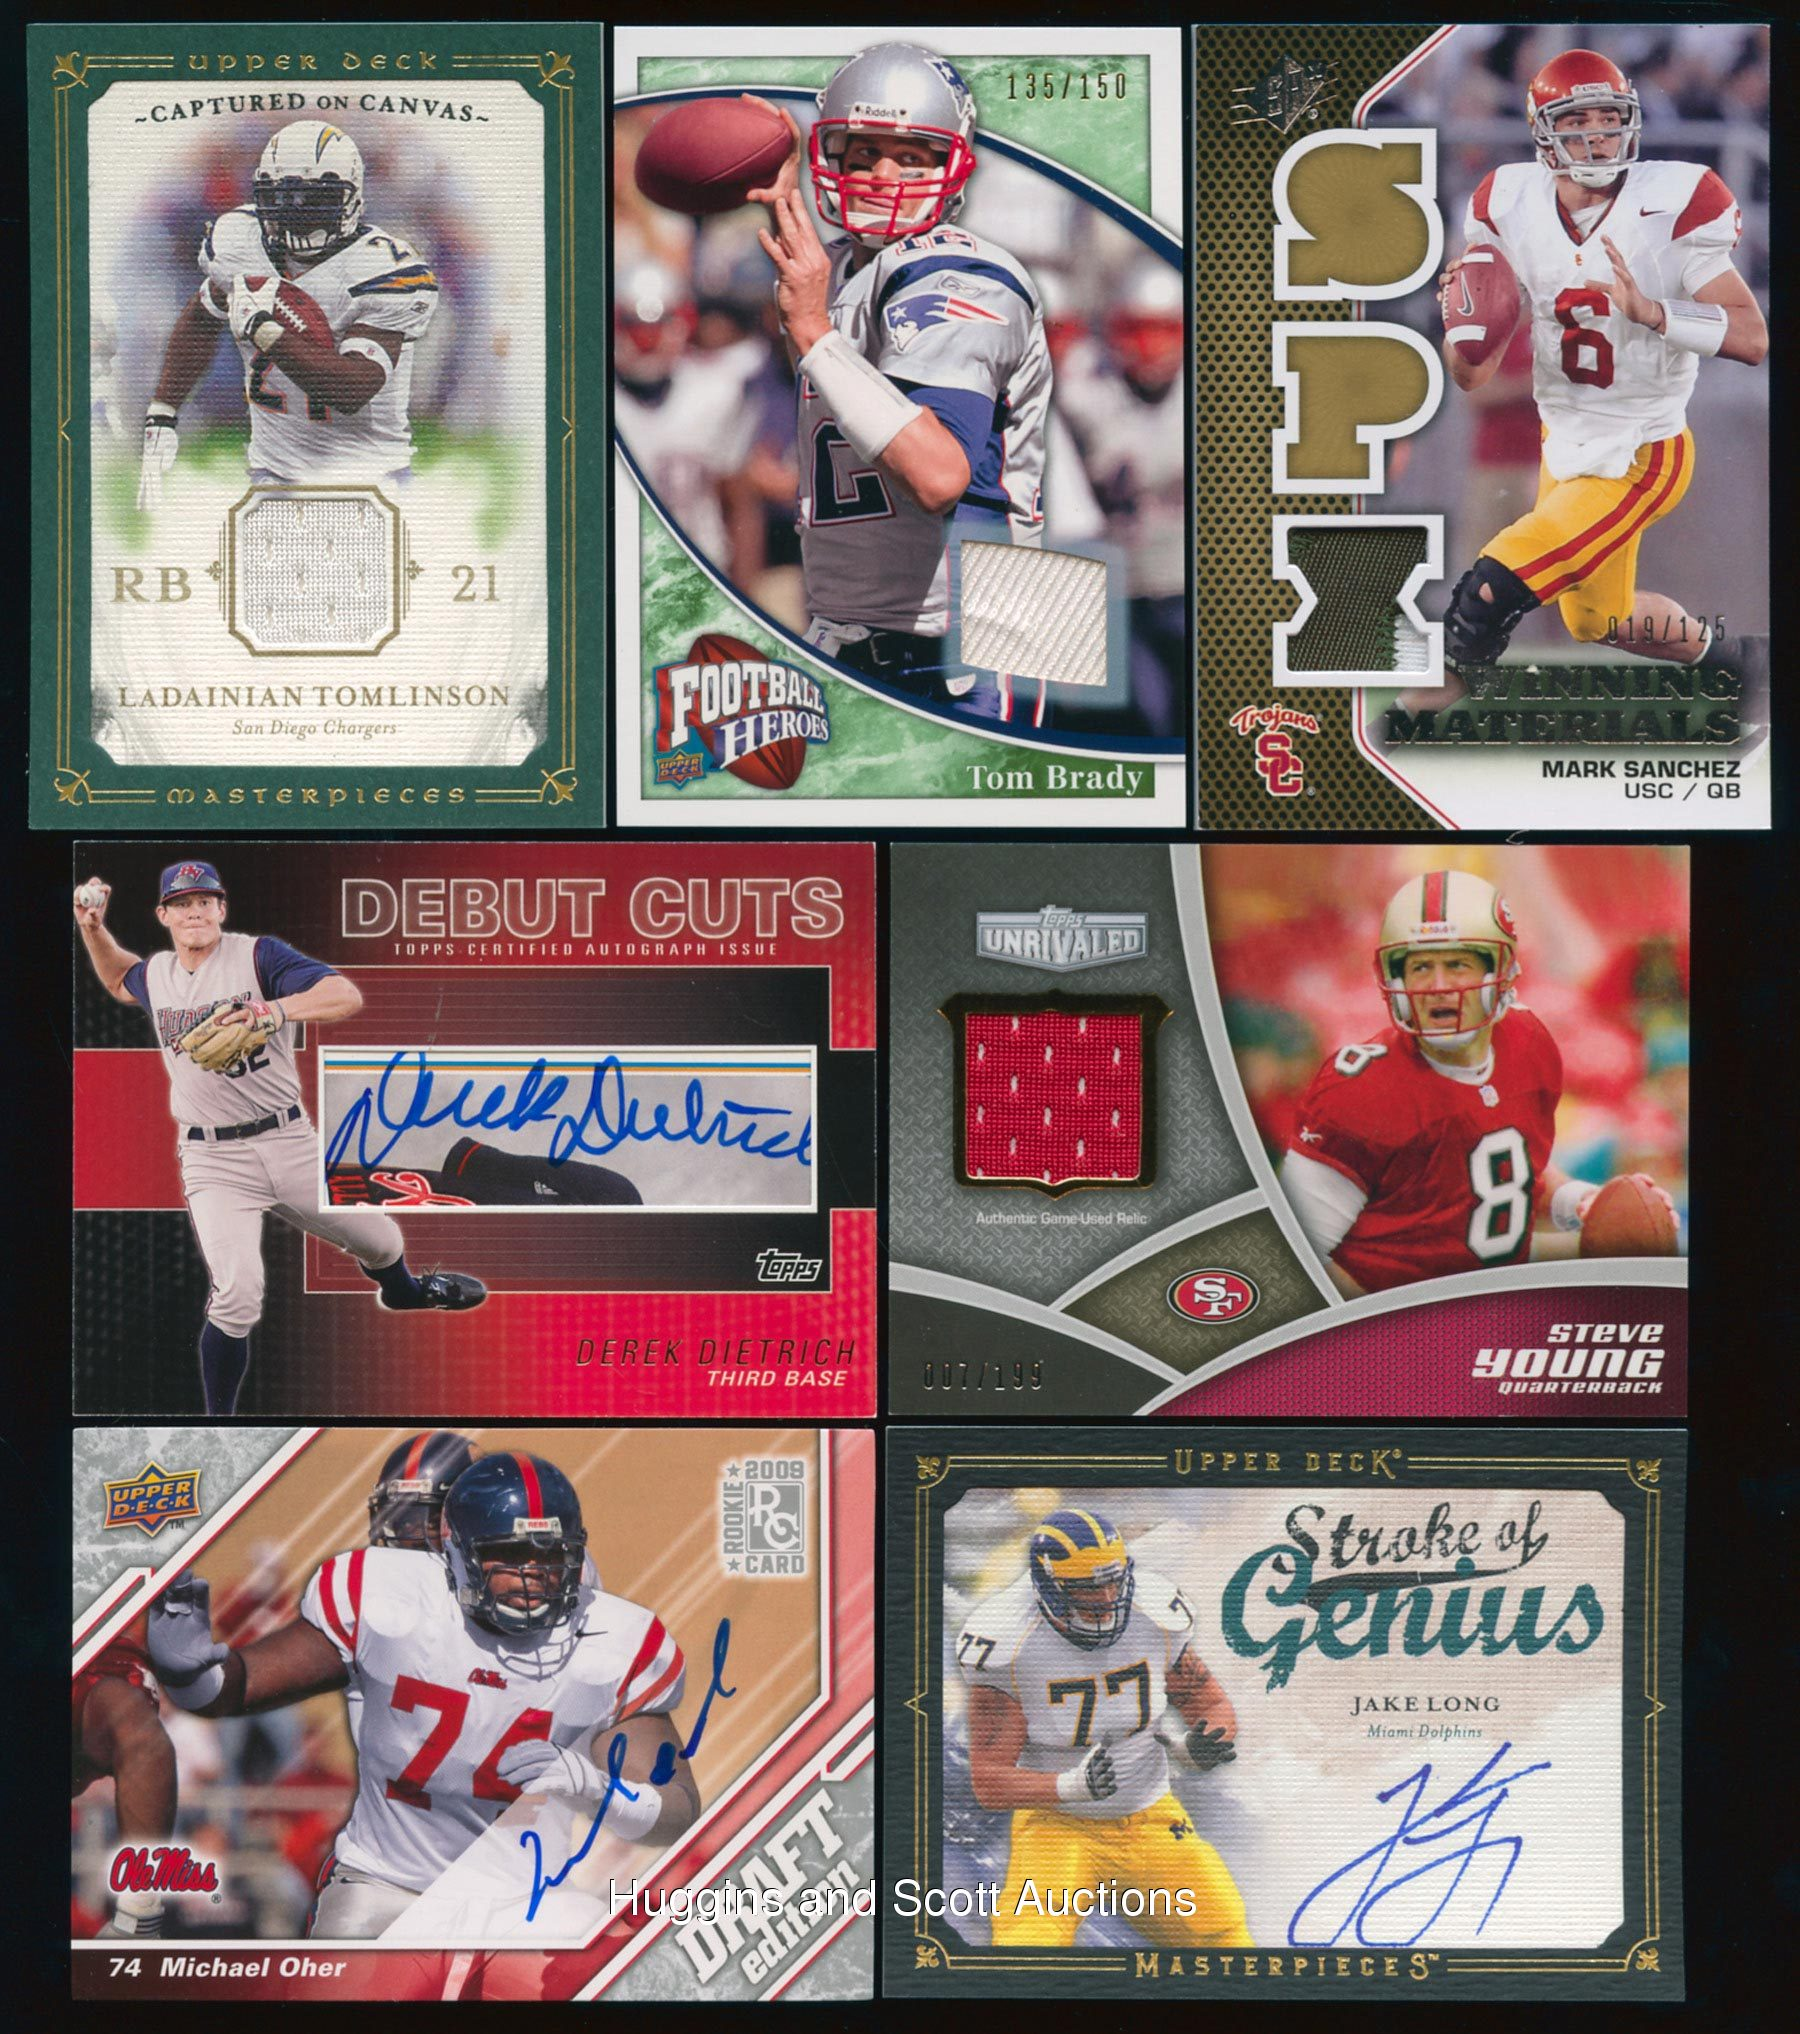 Hochanadel Sets Two Meet Records In Strasburg: (530+) 2008-2010 Baseball & Football Certified Auto/Jersey